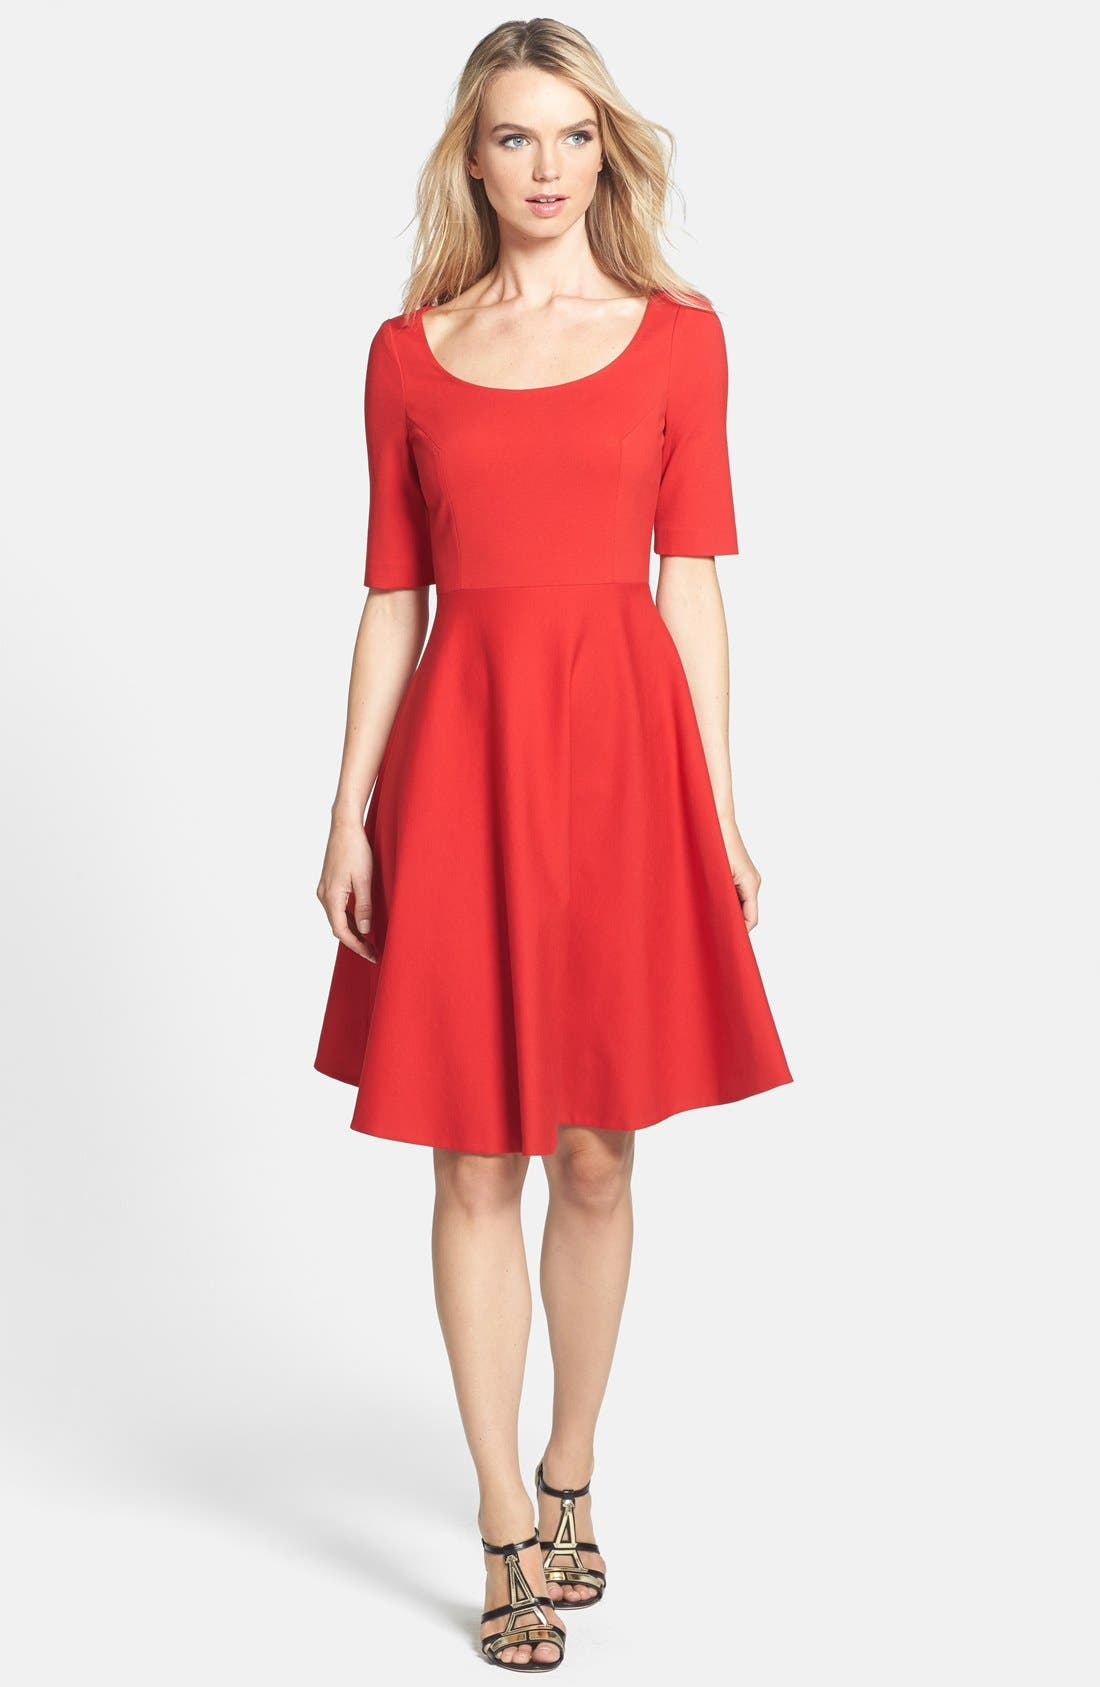 Alternate Image 1 Selected - kate spade new york 'jada' stretch fit & flare dress